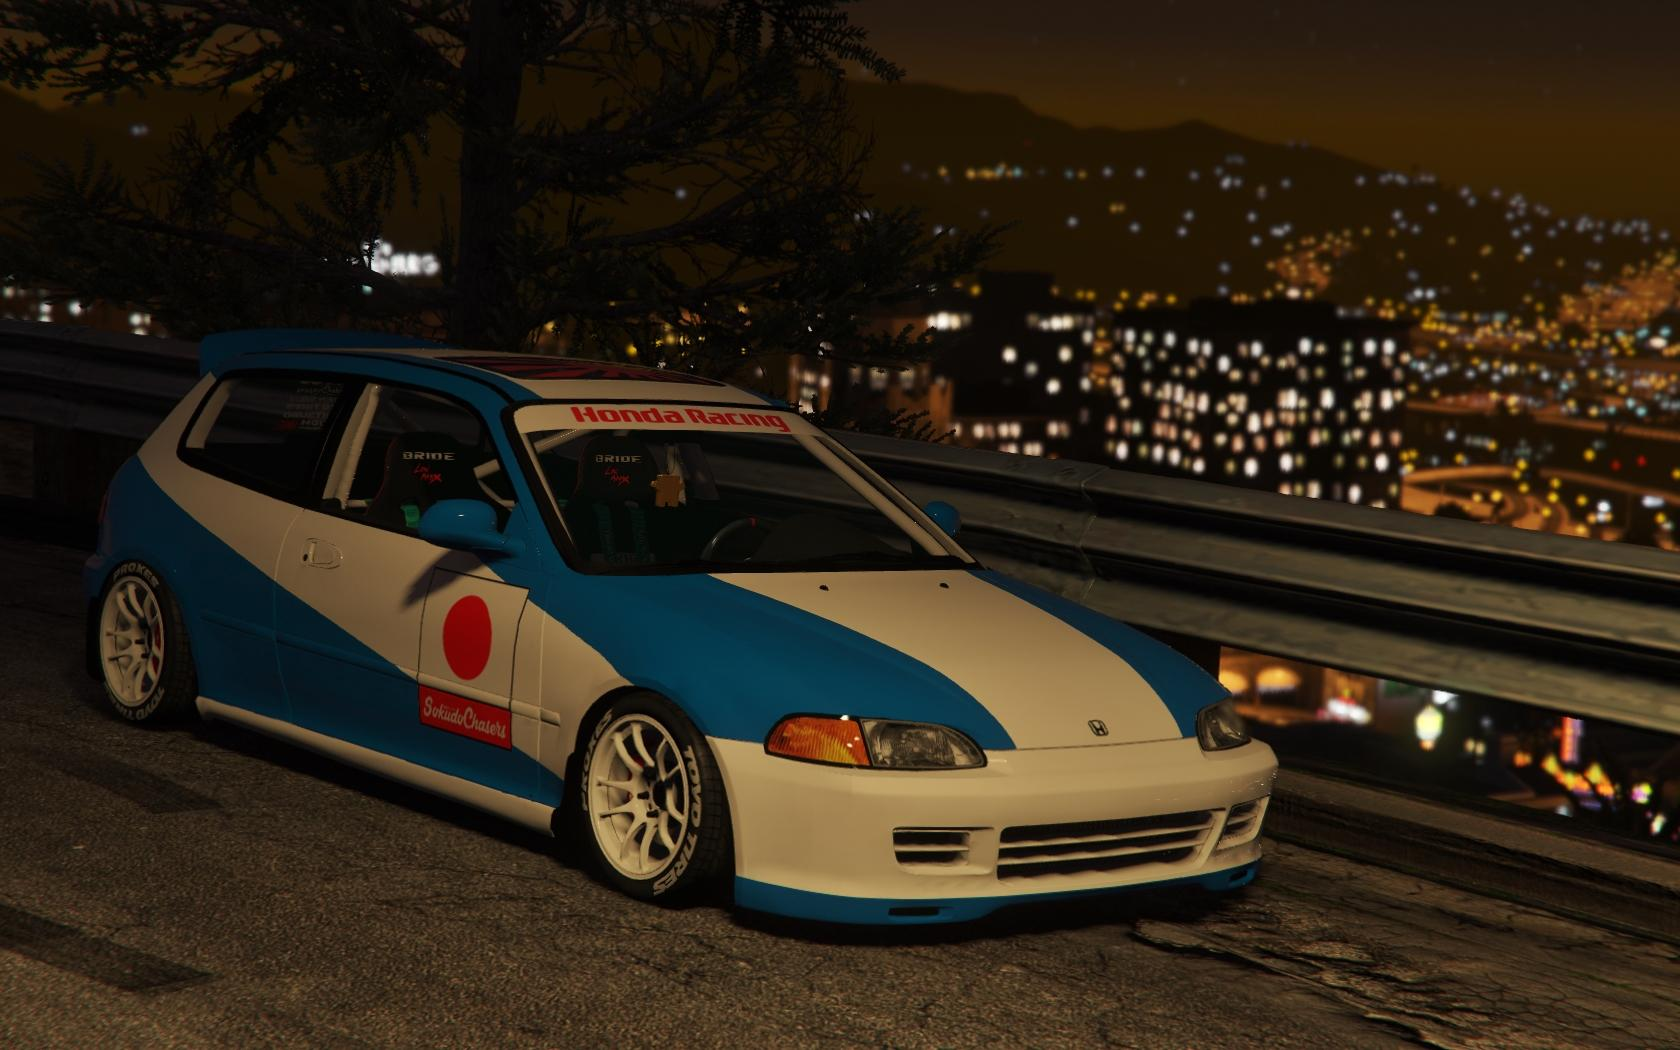 honda civic eg6 kanjo edition tuning template gta5. Black Bedroom Furniture Sets. Home Design Ideas